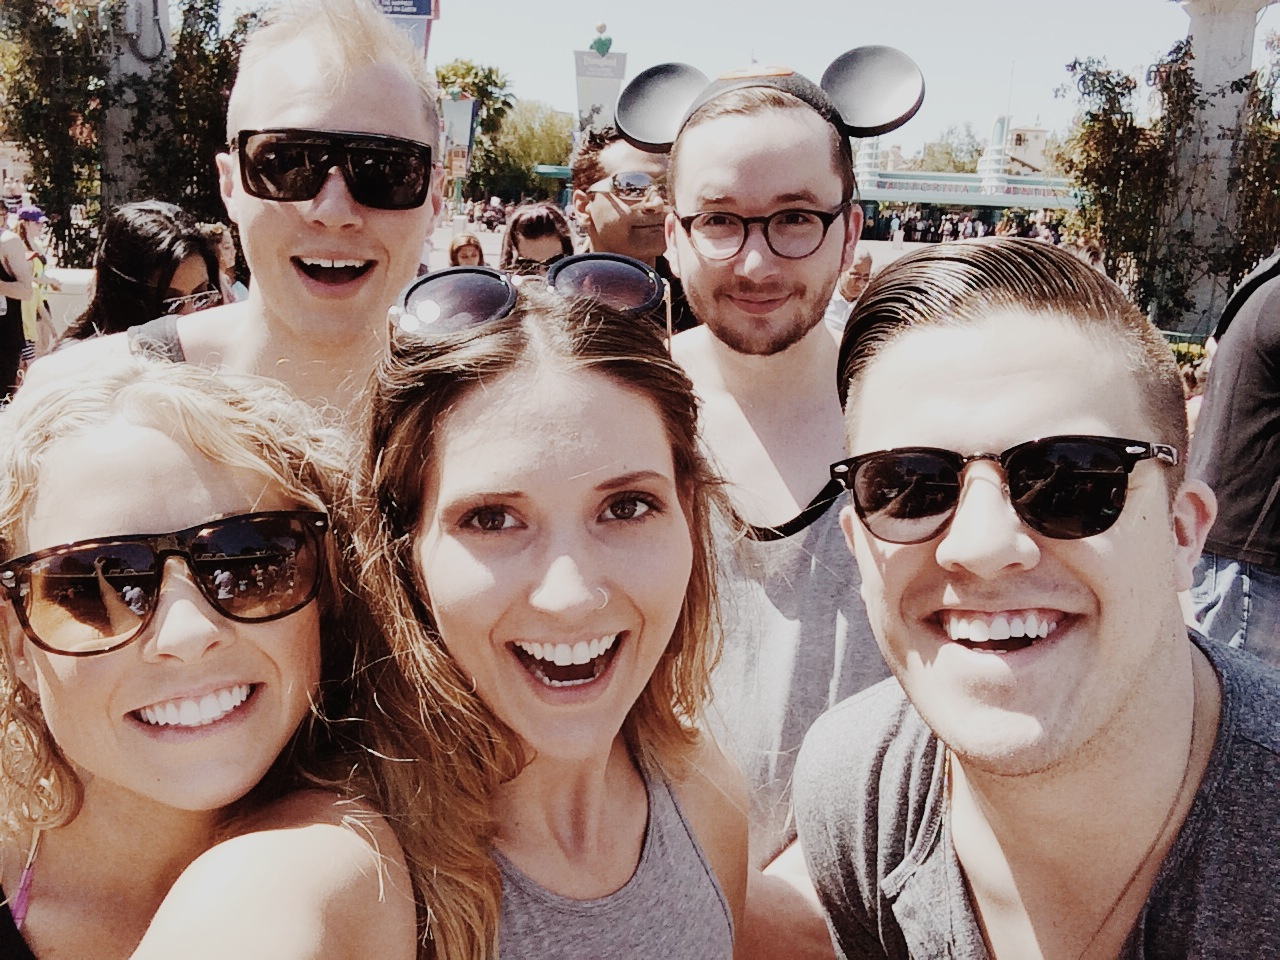 Going to Disney Land with some of my favorite people.